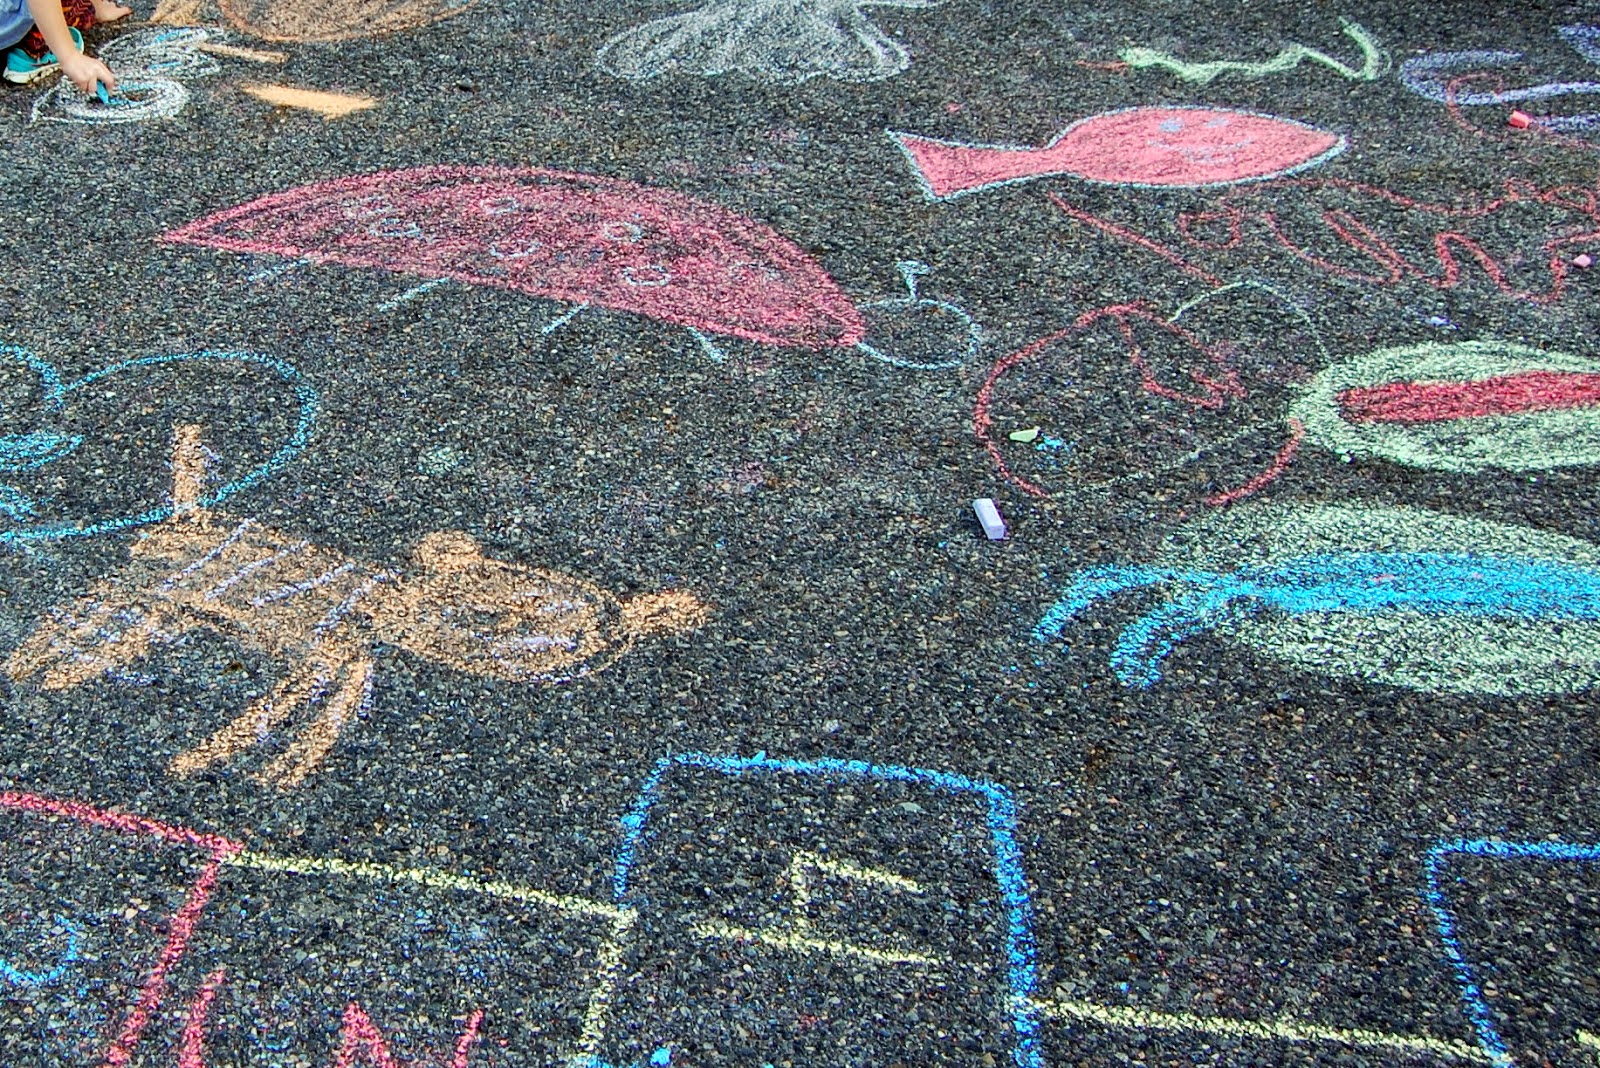 chalk was available to be creative